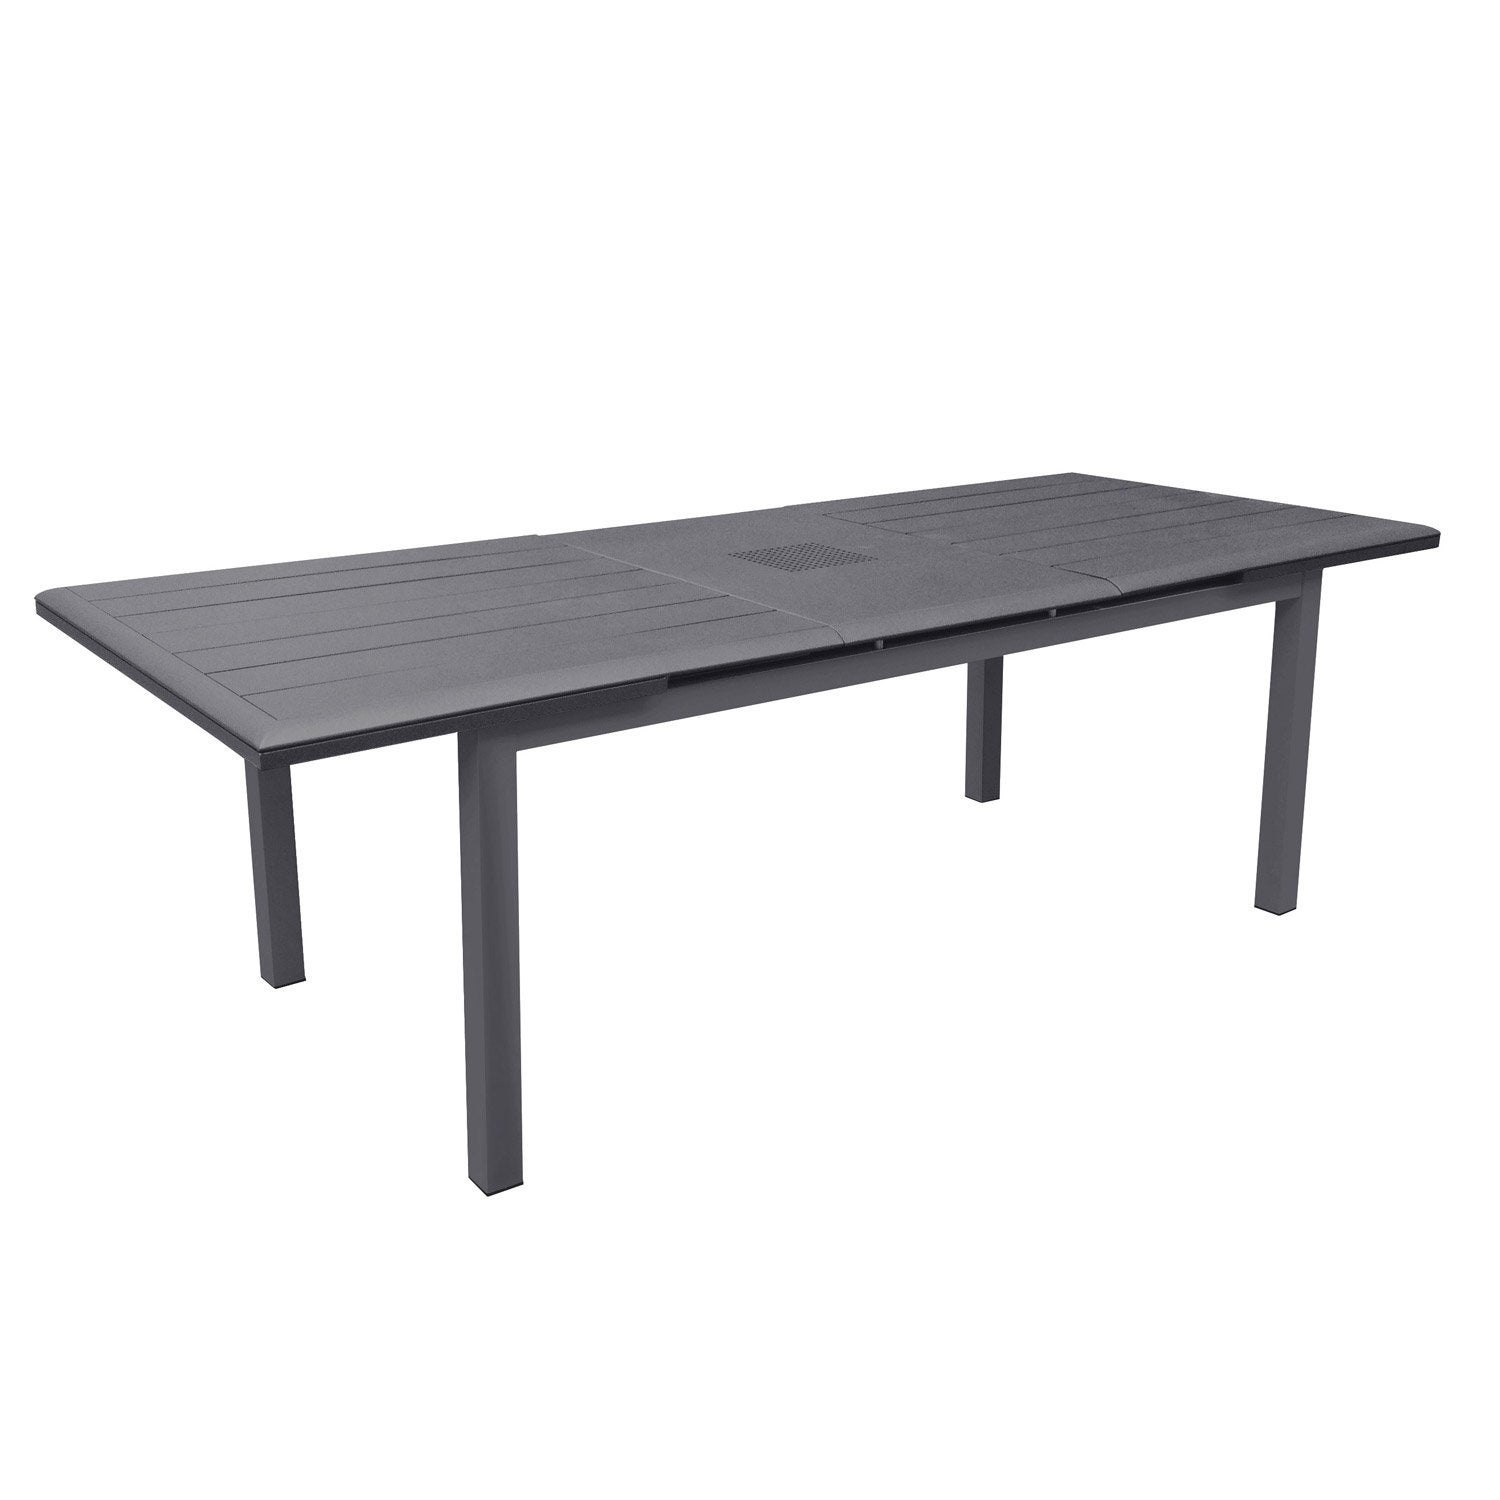 Table de jardin louisiane rectangulaire gris 6 8 personnes for Ocultacion jardin leroy merlin